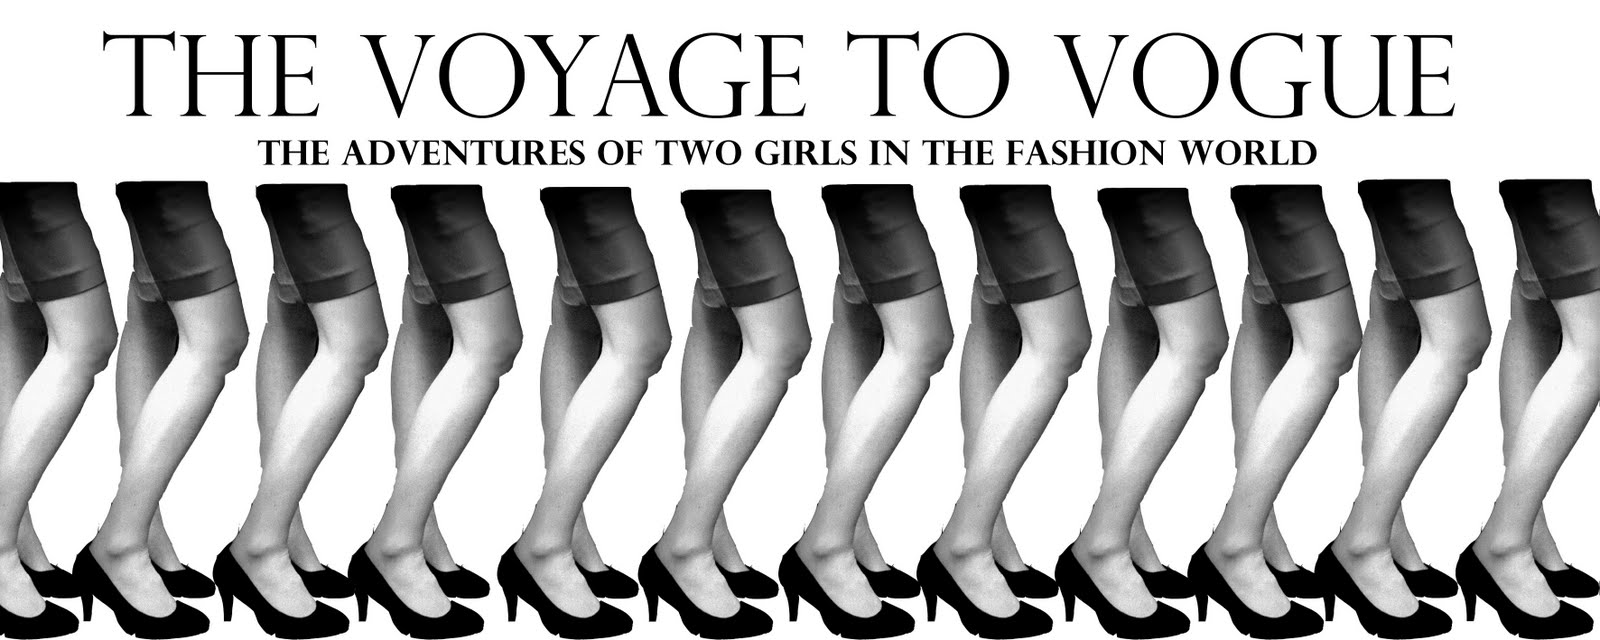 The Voyage To Vogue